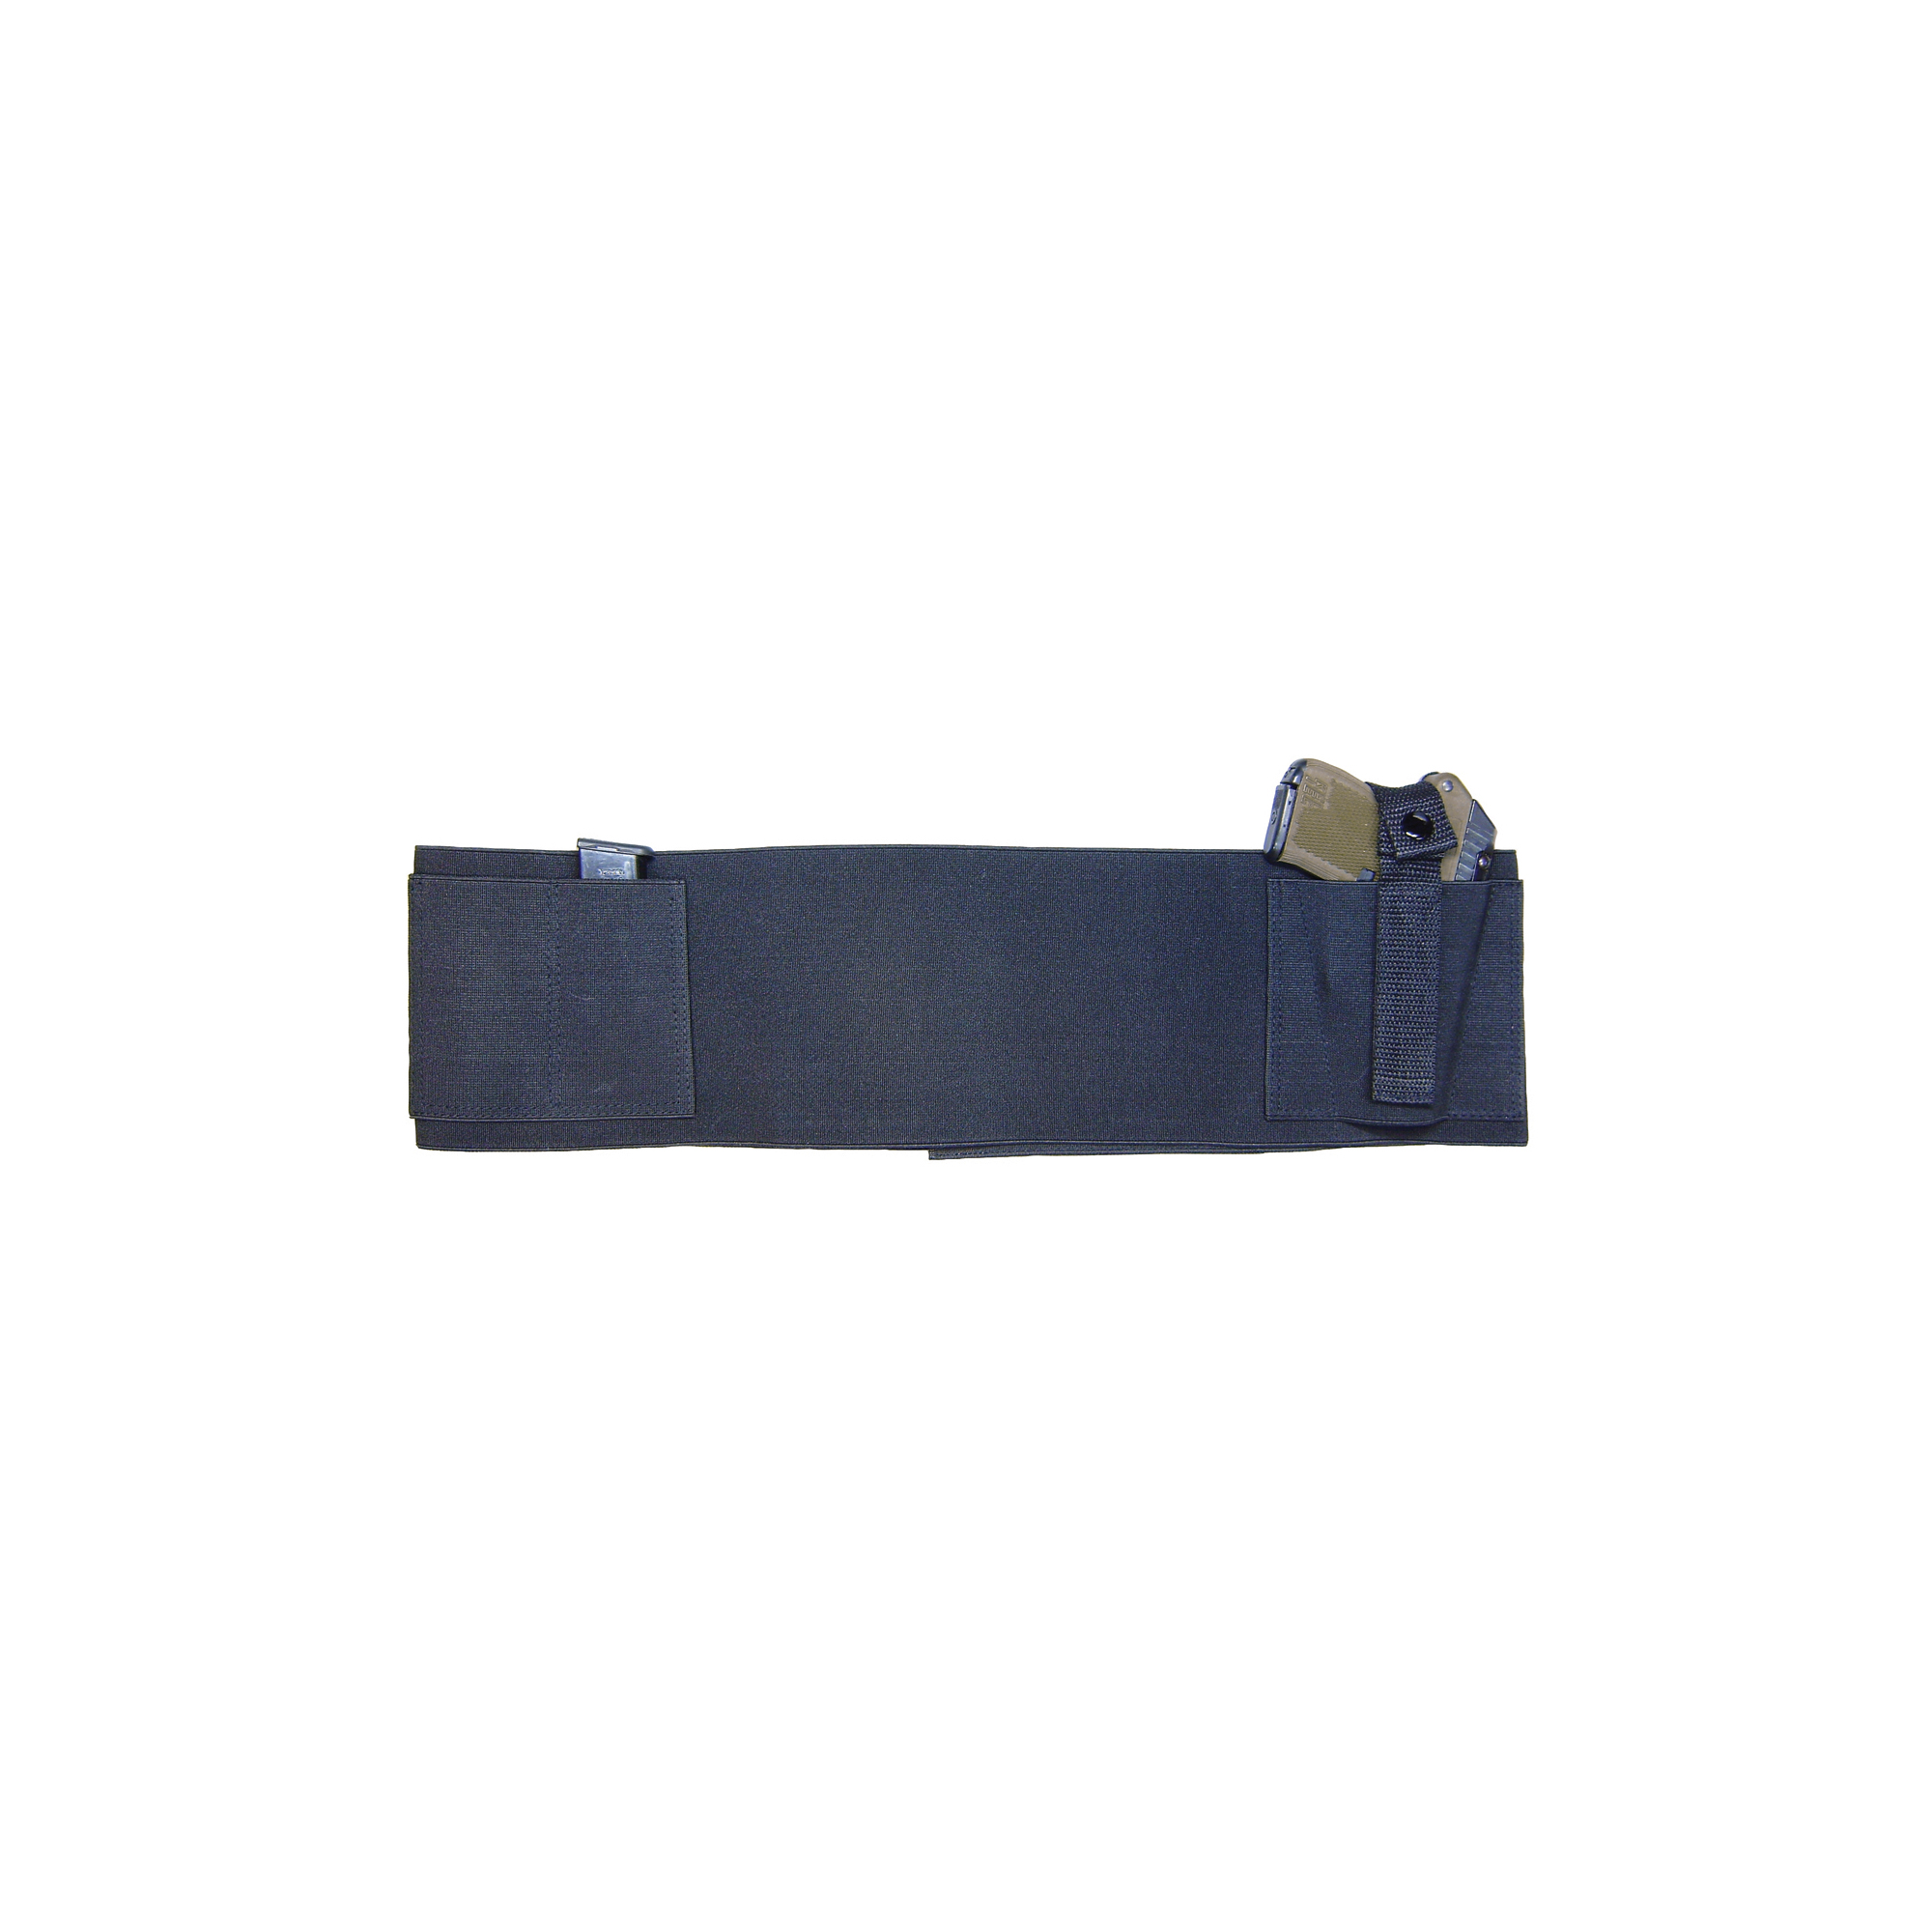 Waist wrap holster. Heavy duty elastic with secure Velcro closure and extra mag pockets.